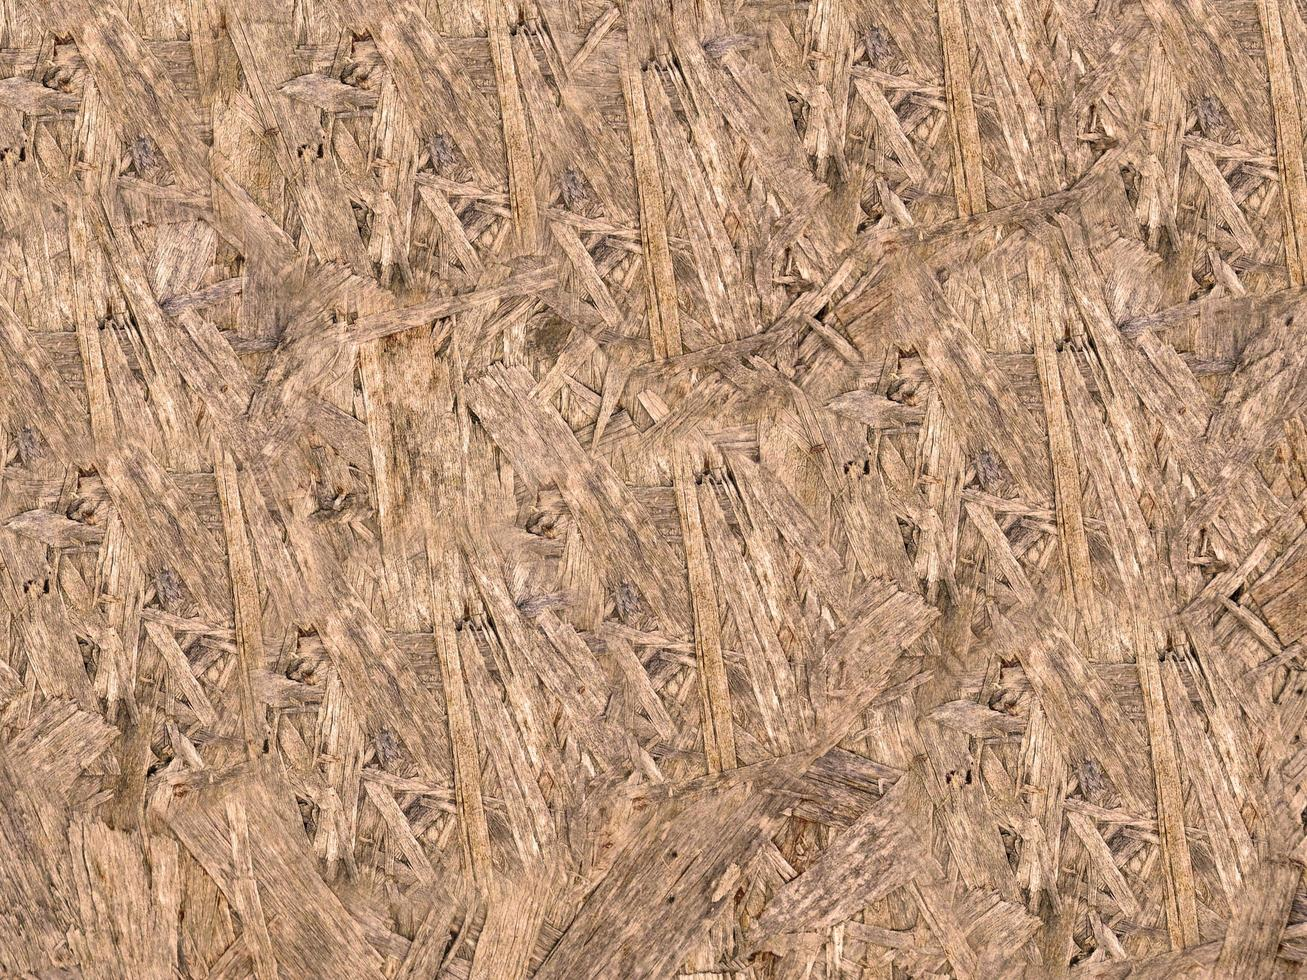 Wood panel for background or texture photo